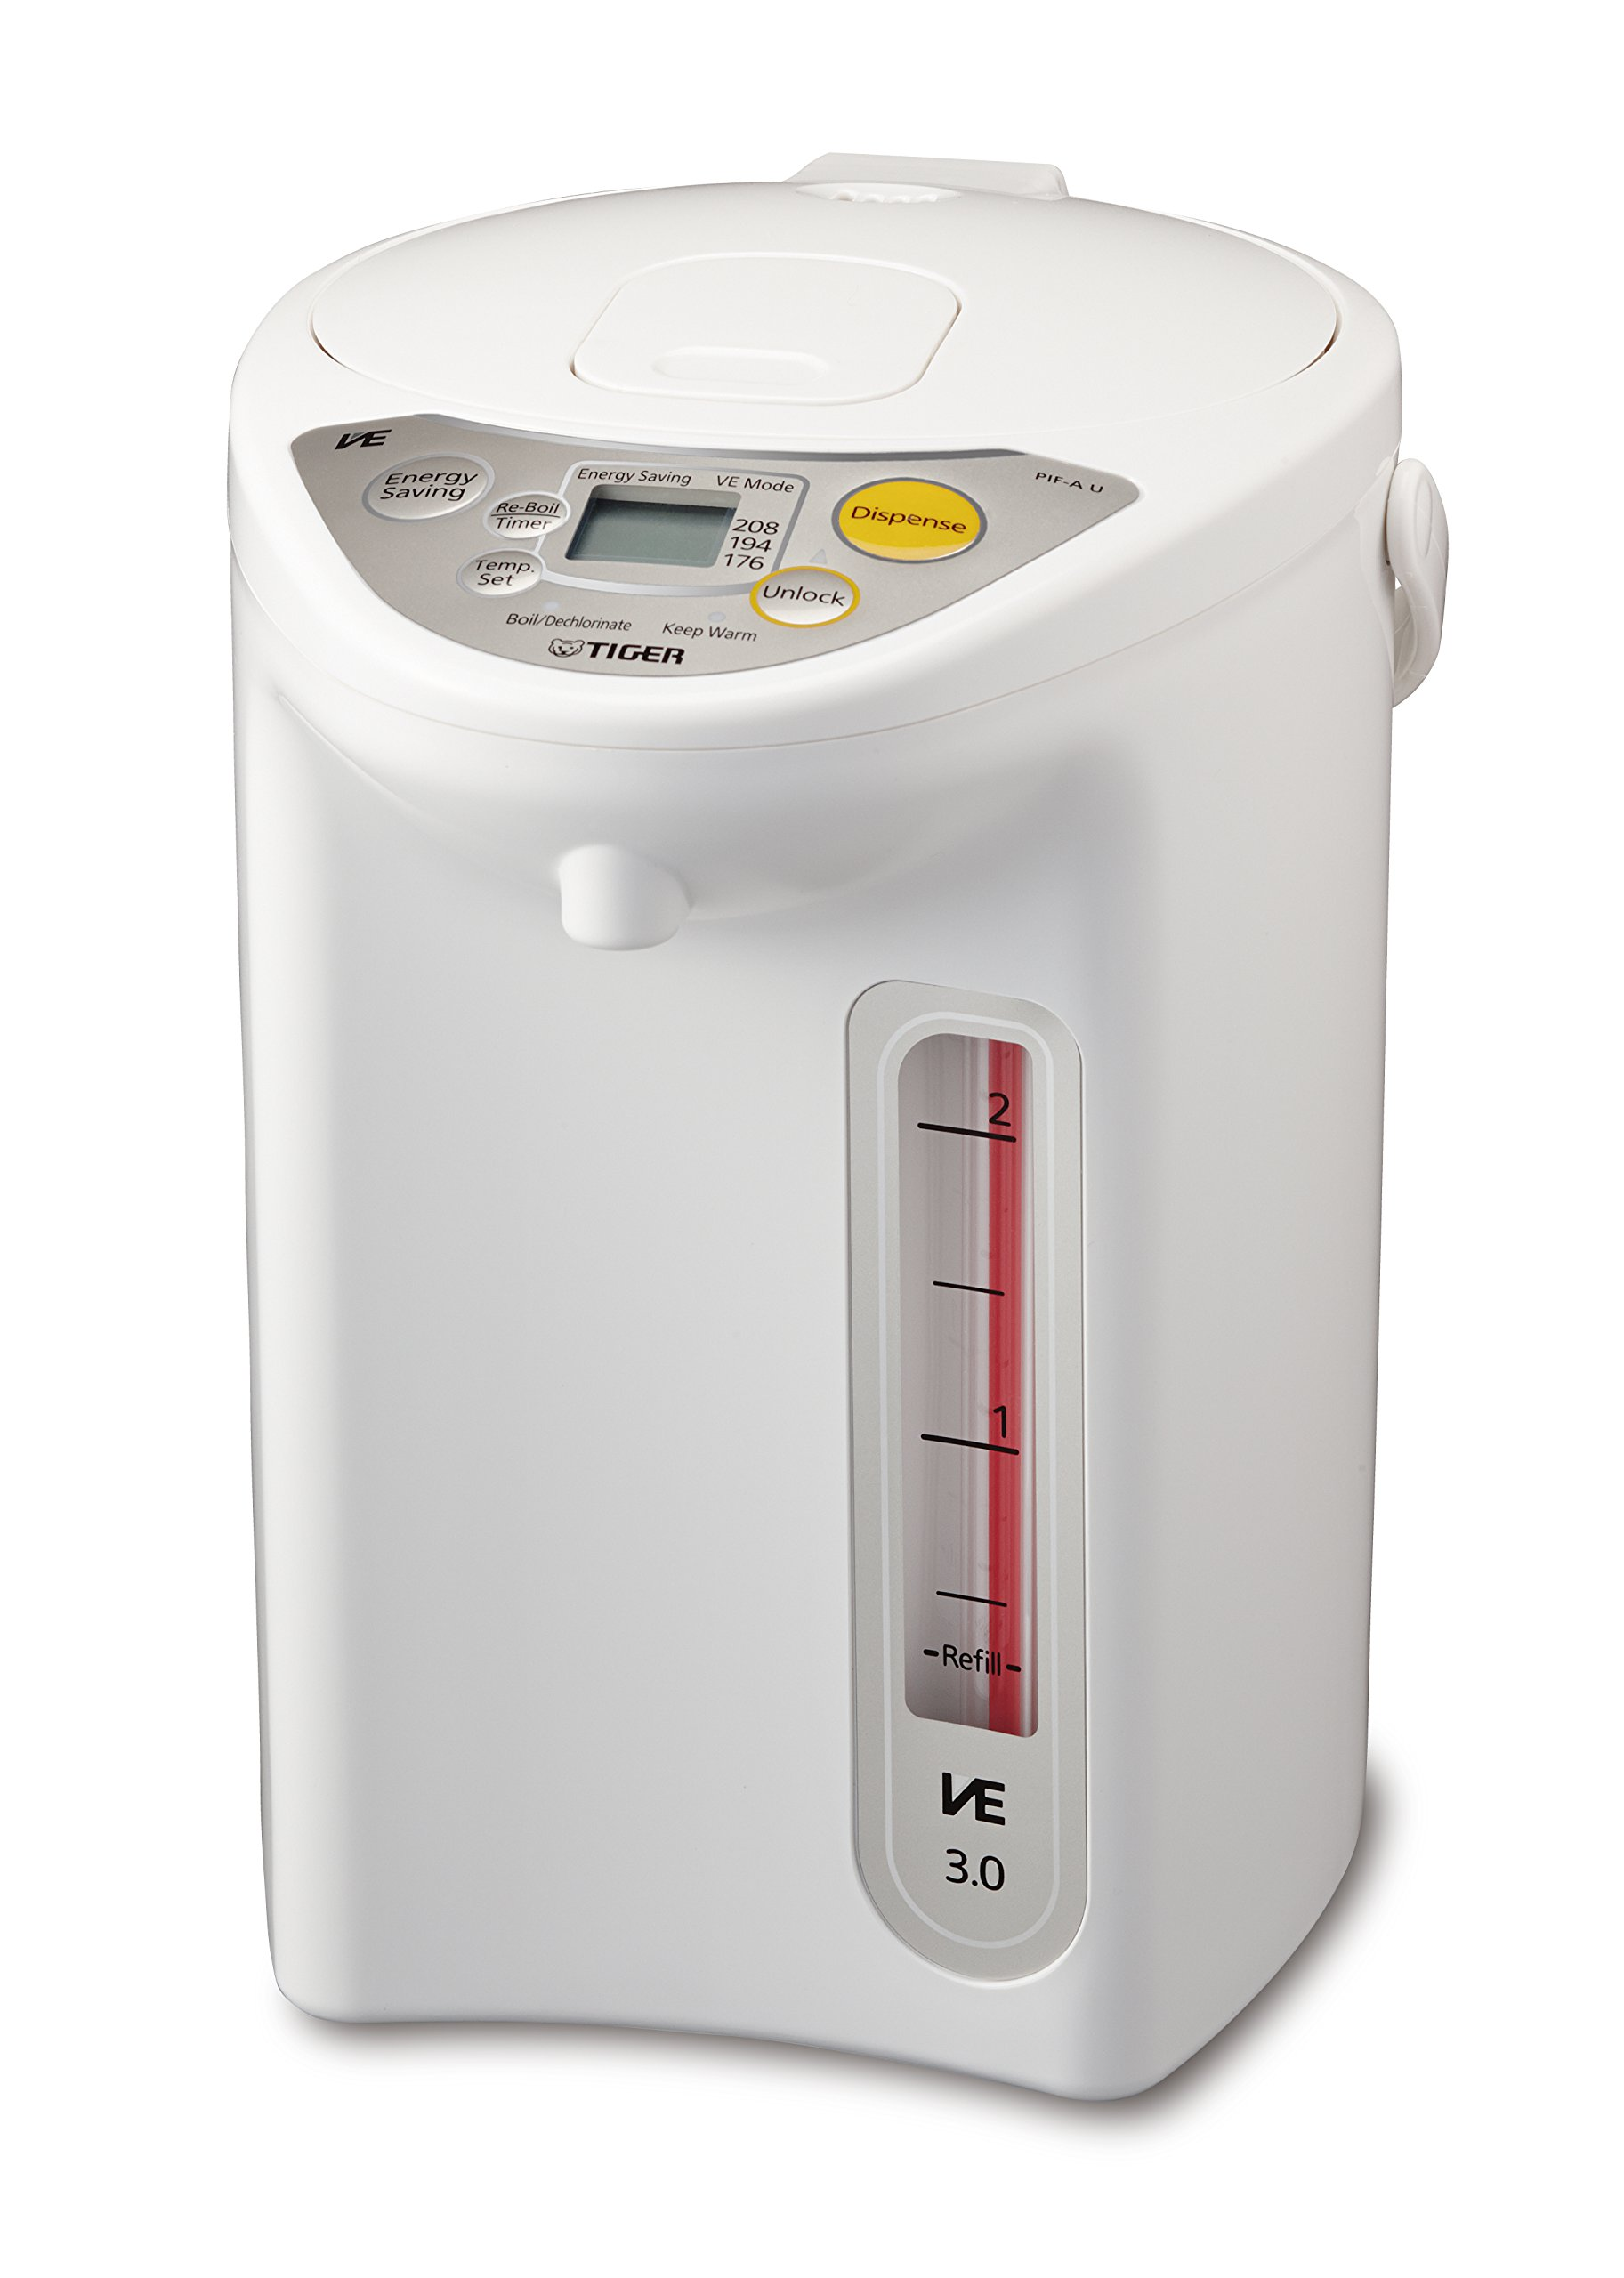 Tiger PIF-A30U-WU VE Micom Electric Water Boiler & Warmer, 3 L, White by Tiger Corporation